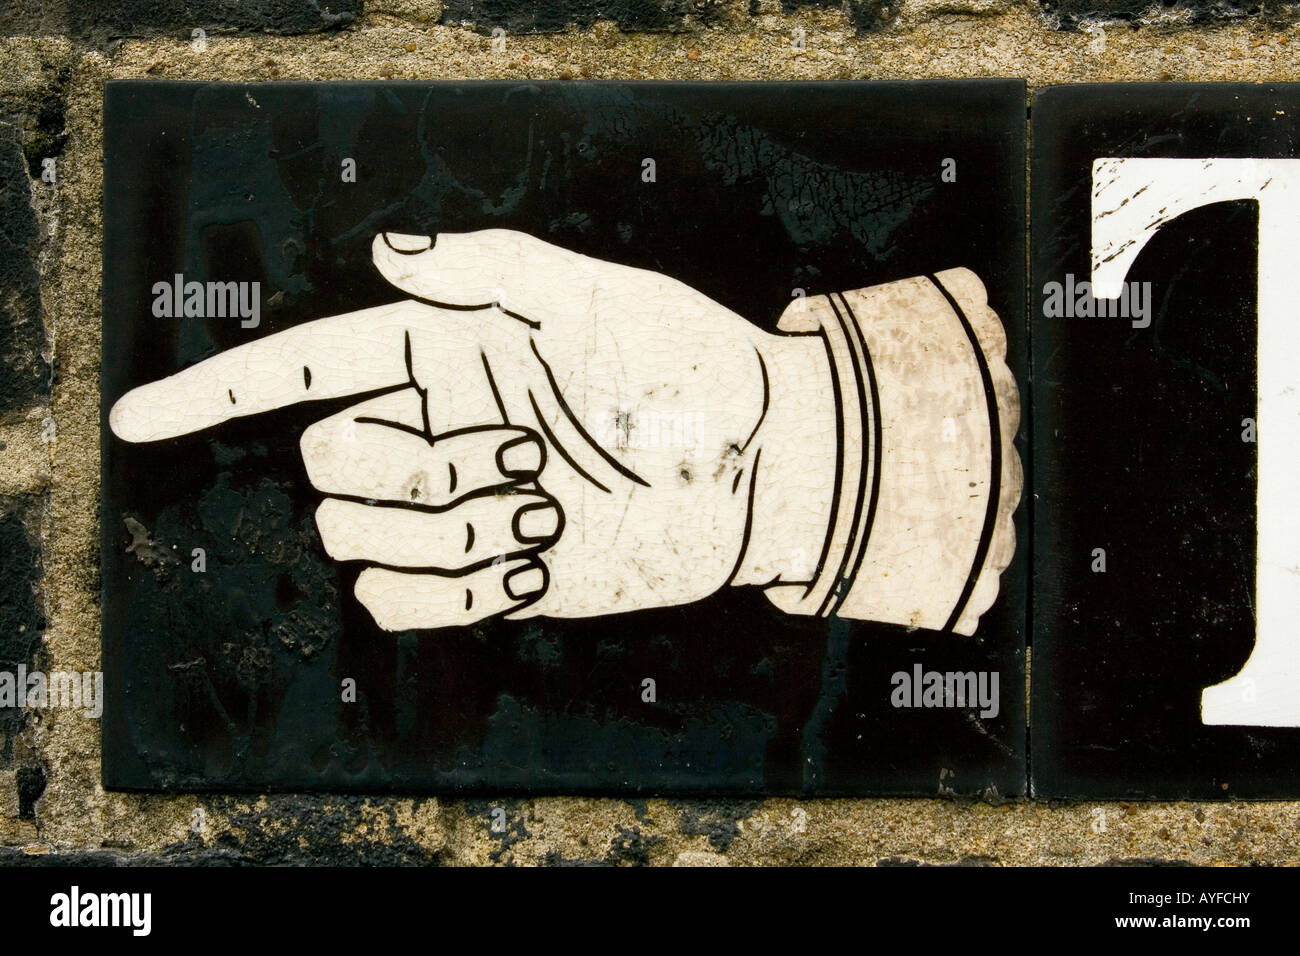 A finger pointing TO with hand from street sign Hampstead London England UK Stock Photo